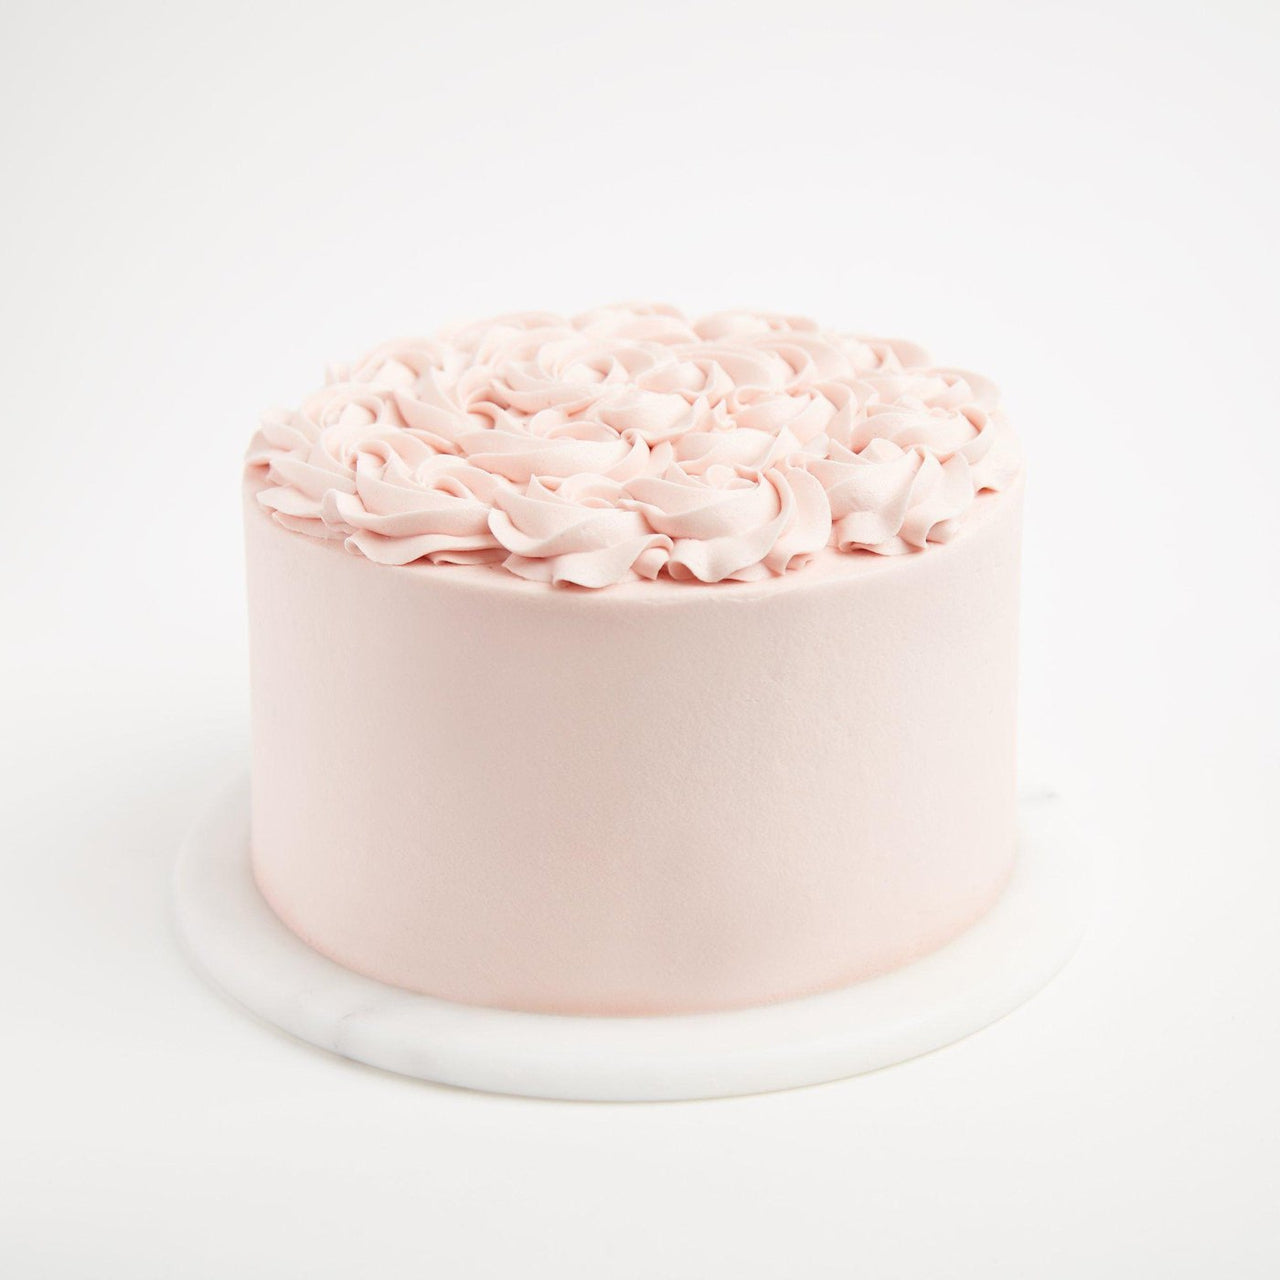 Vanilla Rose Cake by Crumbs & Doilies